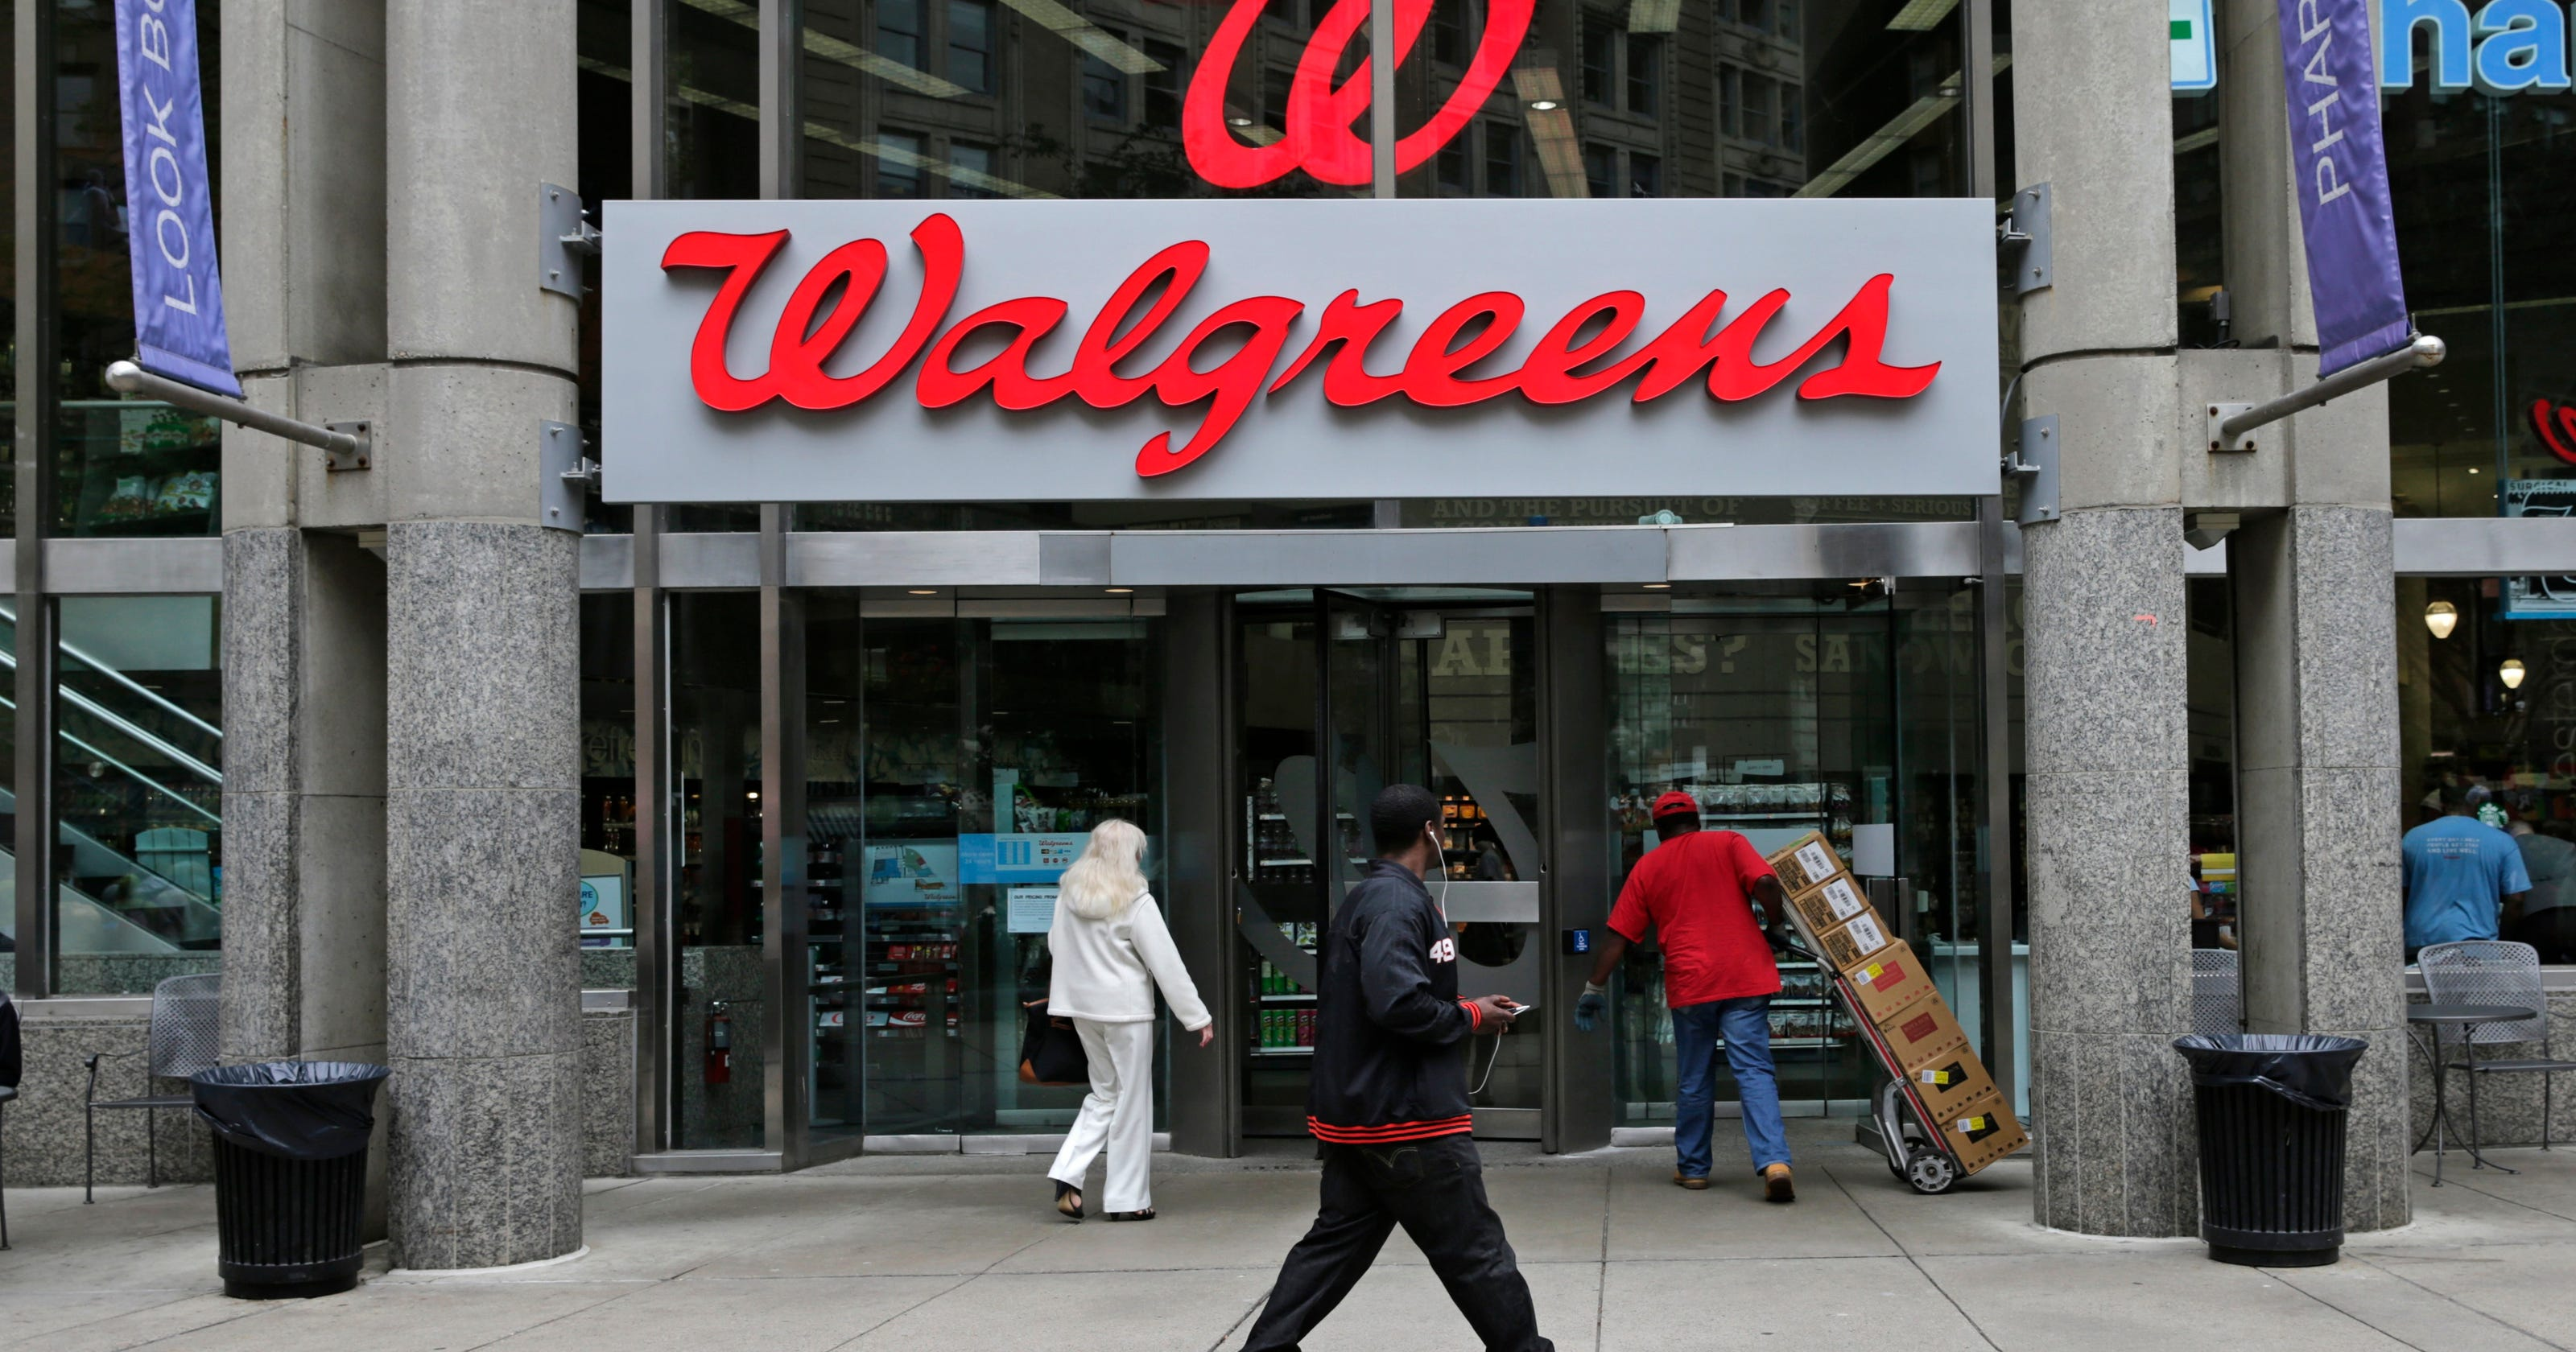 Walgreens and Rite Aid: Am I the only one who hates this deal?